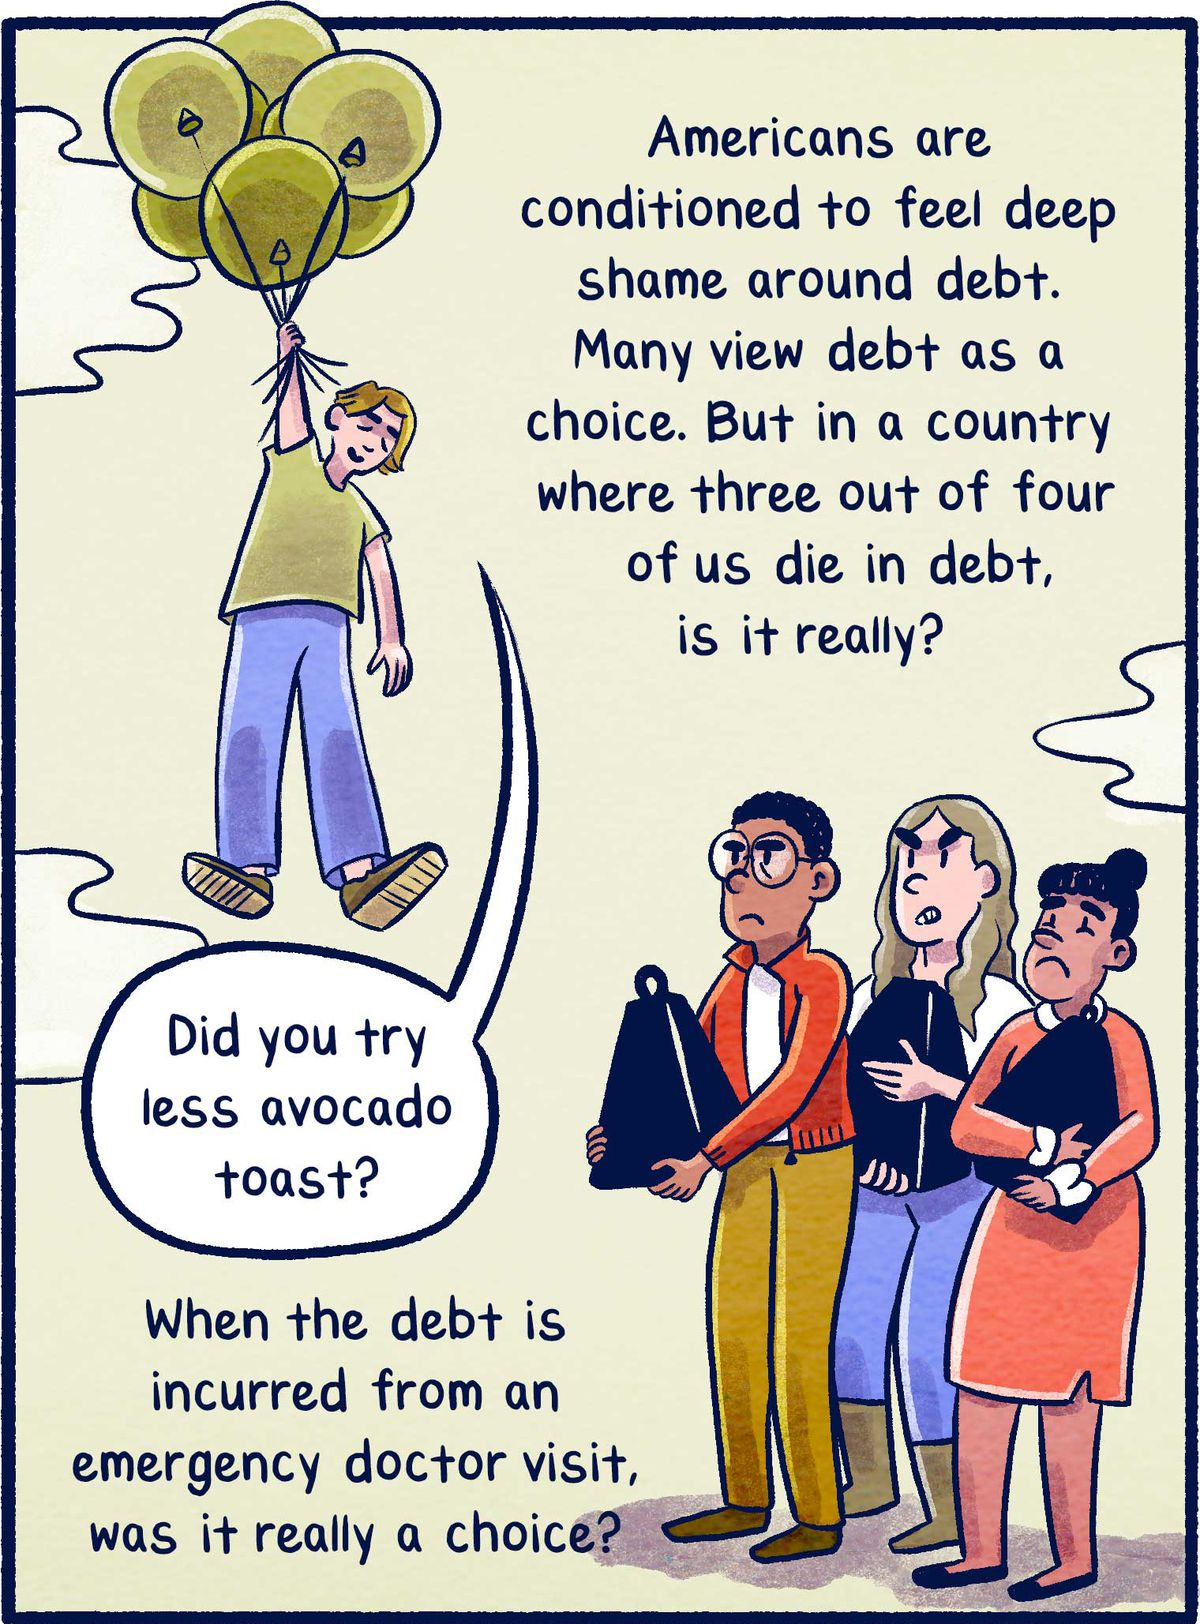 Americans are conditioned to feel deep shame around debt. Many view debt as a choice. But in a country where three out of four of us die in debt, is it really? When the debt is incurred from an emergency doctor visit, was it really a choice?